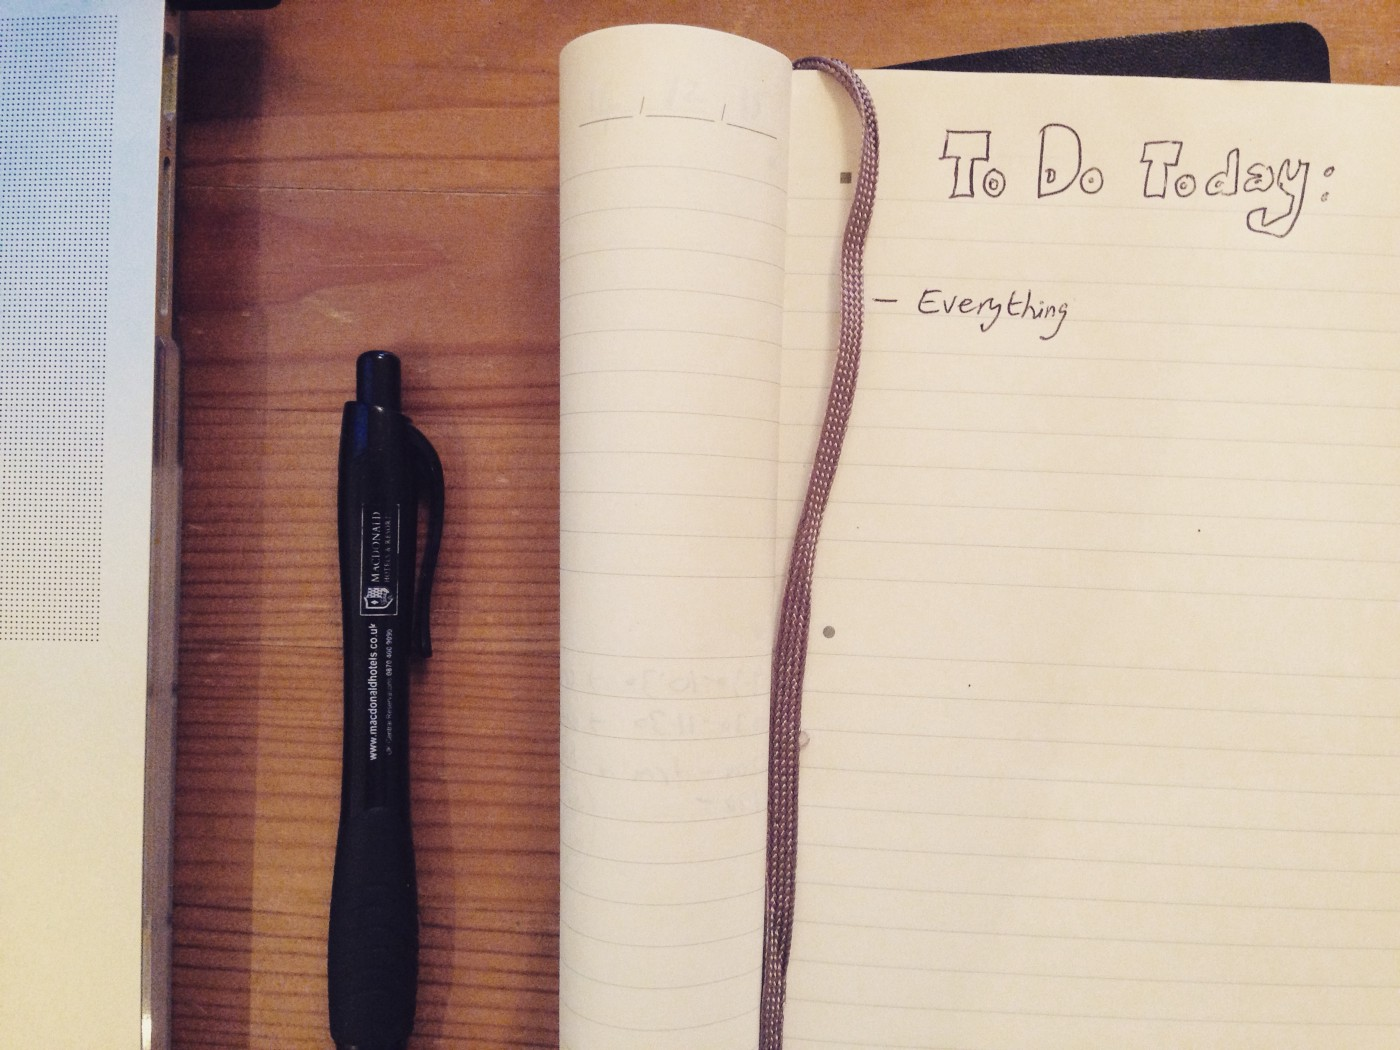 A journal with a 'to do today' list that simply says: 'everything'